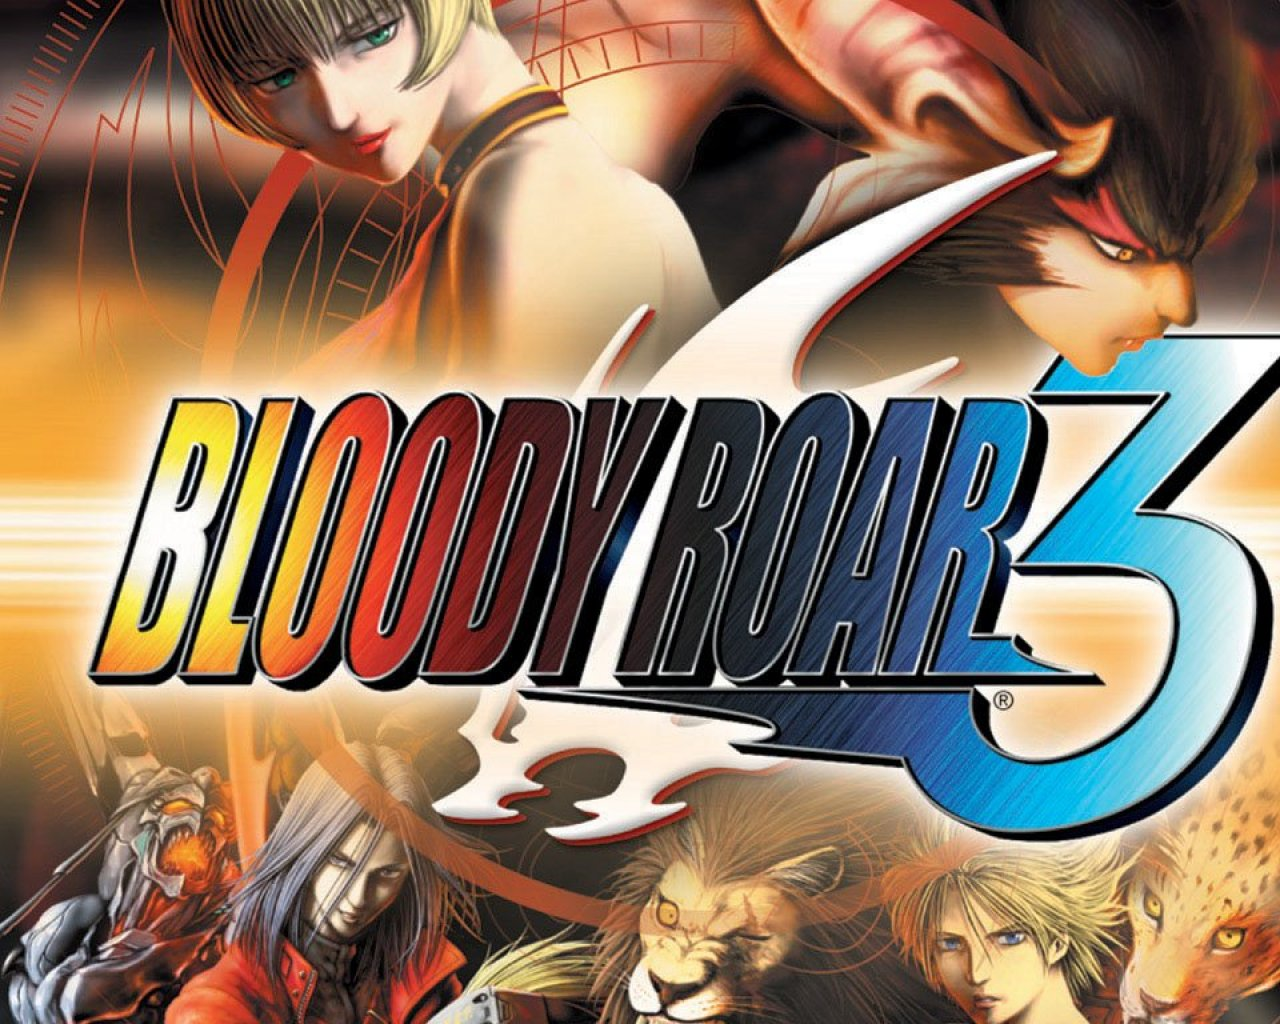 Bloody roar hentay videos hardcore comics